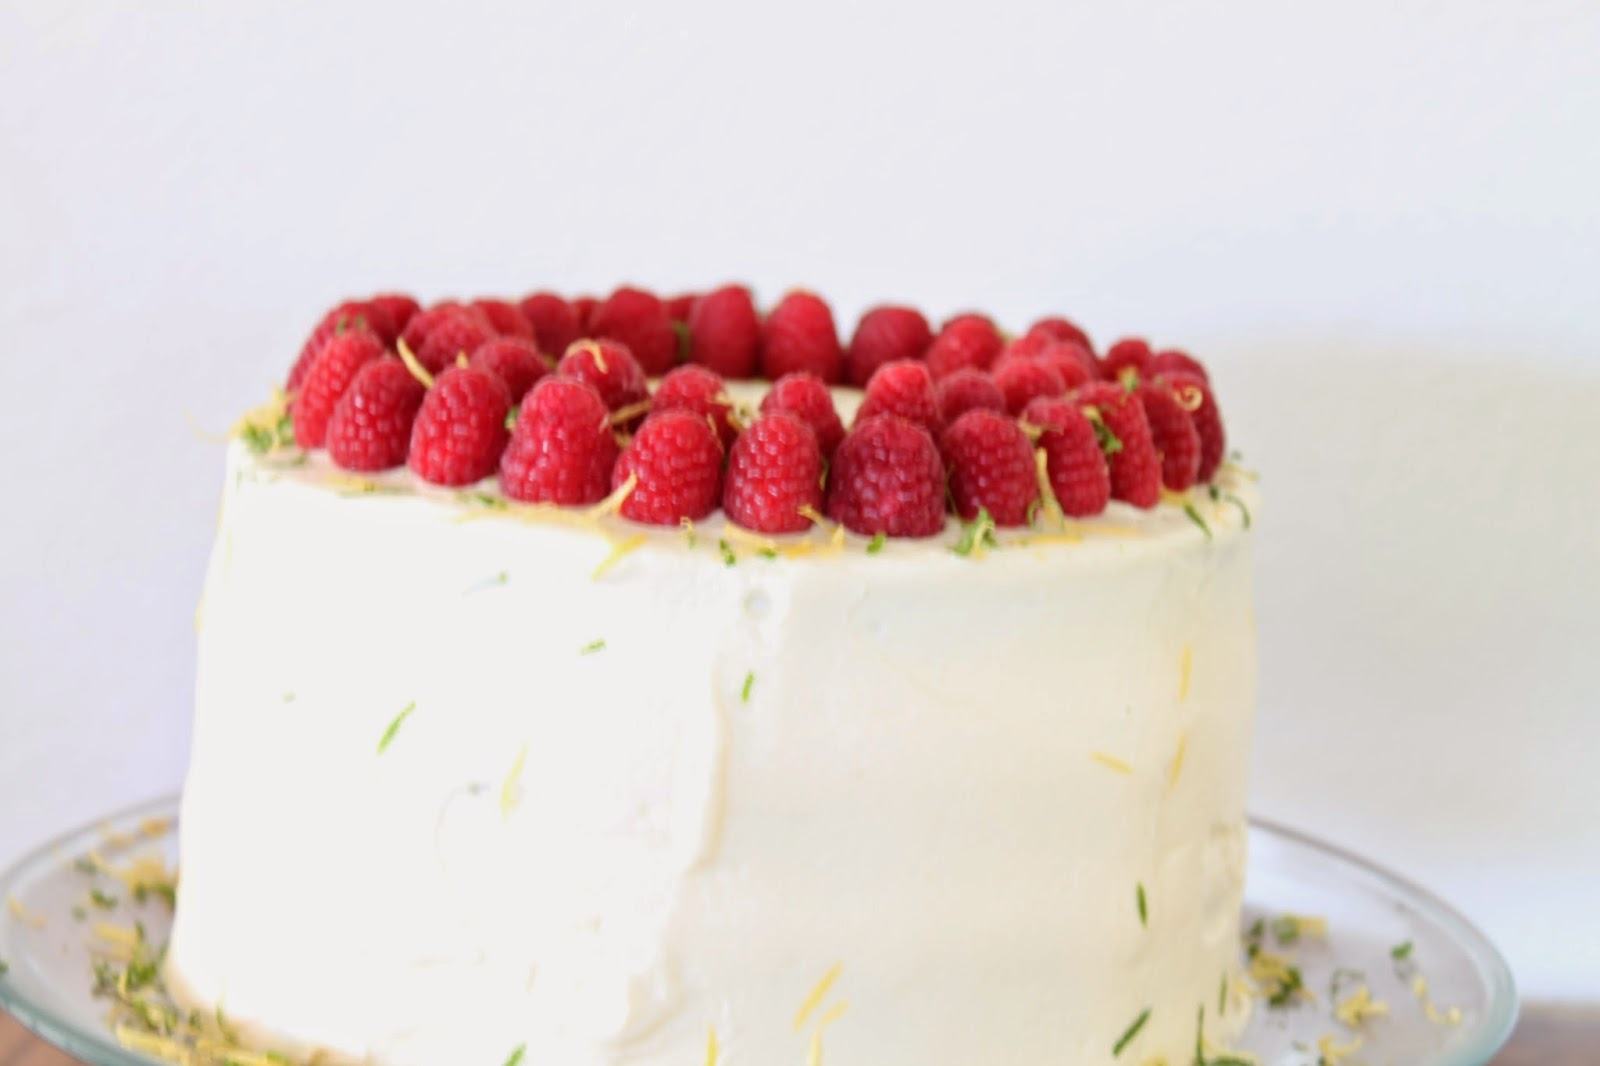 Lemon-Lime Layer Cake with Raspberries